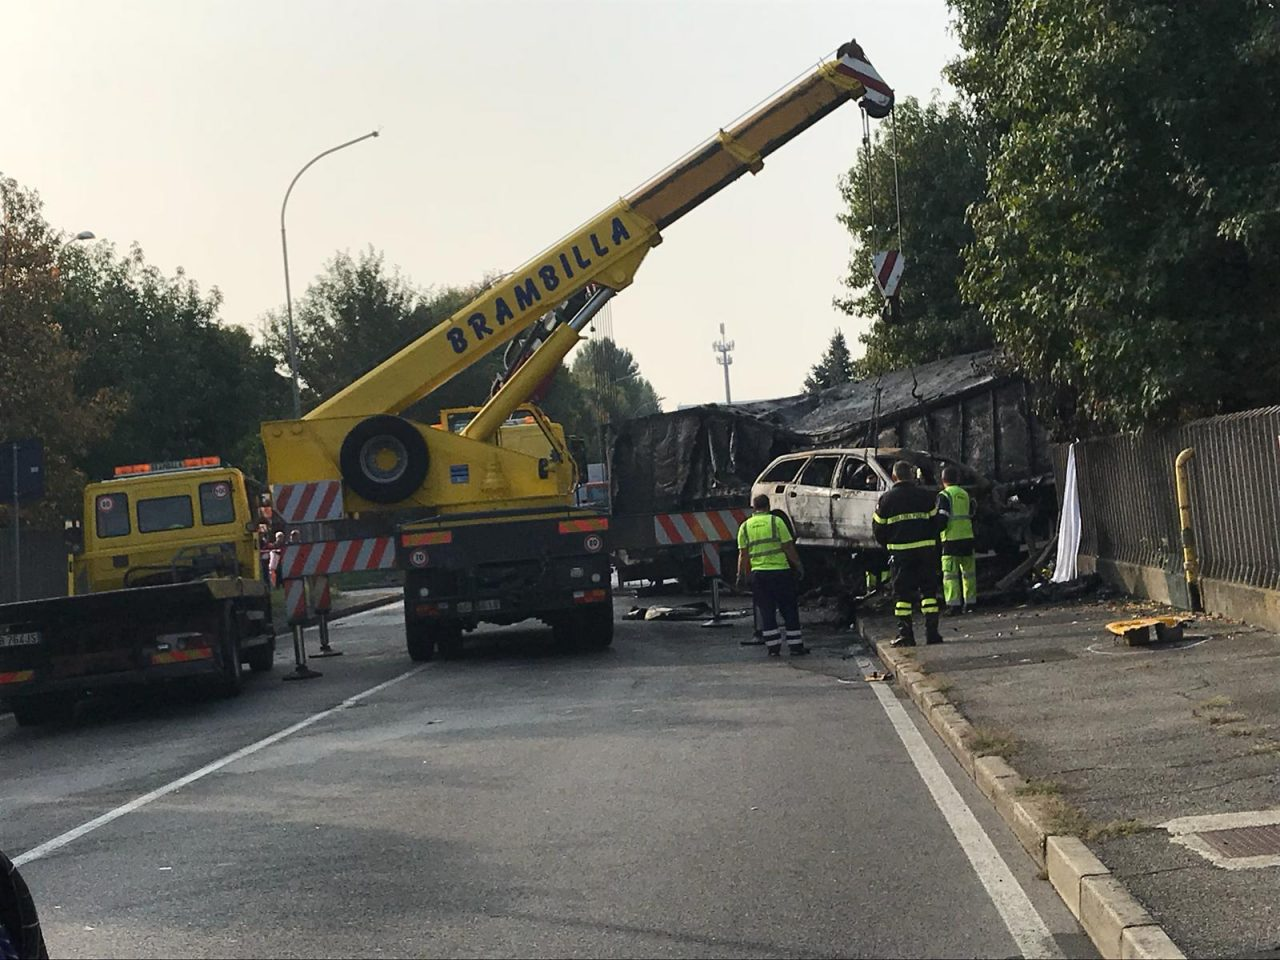 Doppio incidente mortale a Pioltello